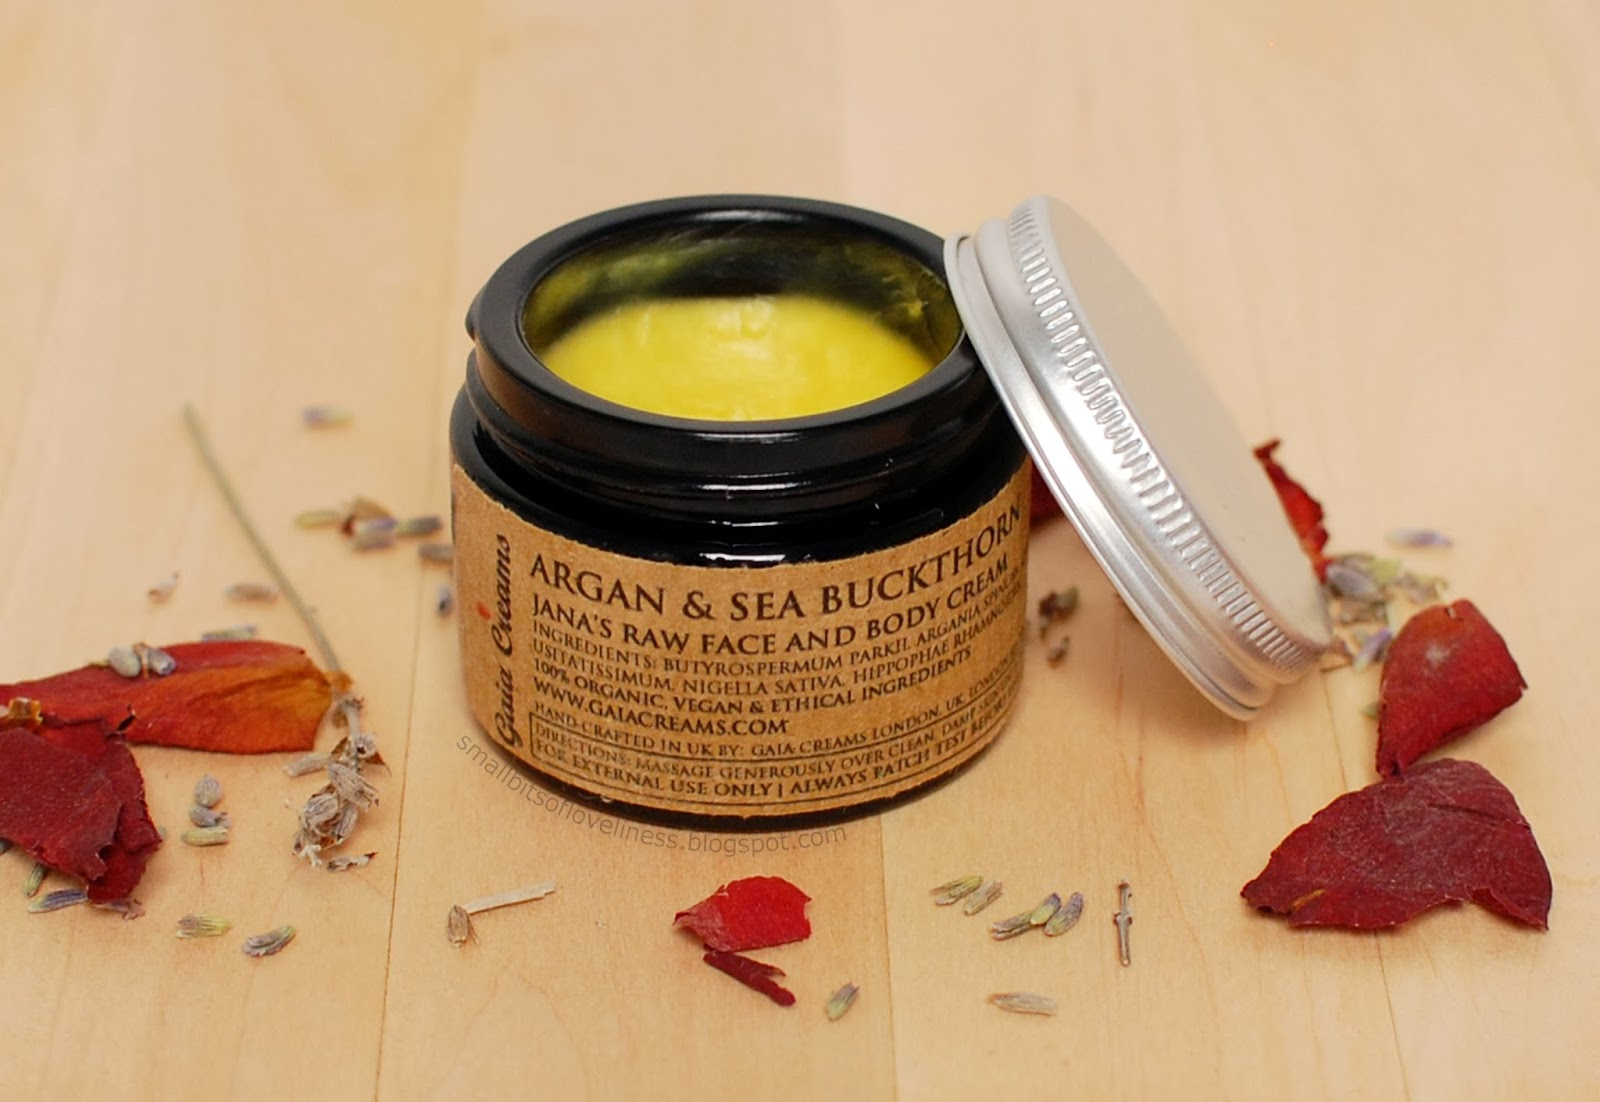 Gaia Creams Argan & Sea Buckthorn Raw Face and Body Cream